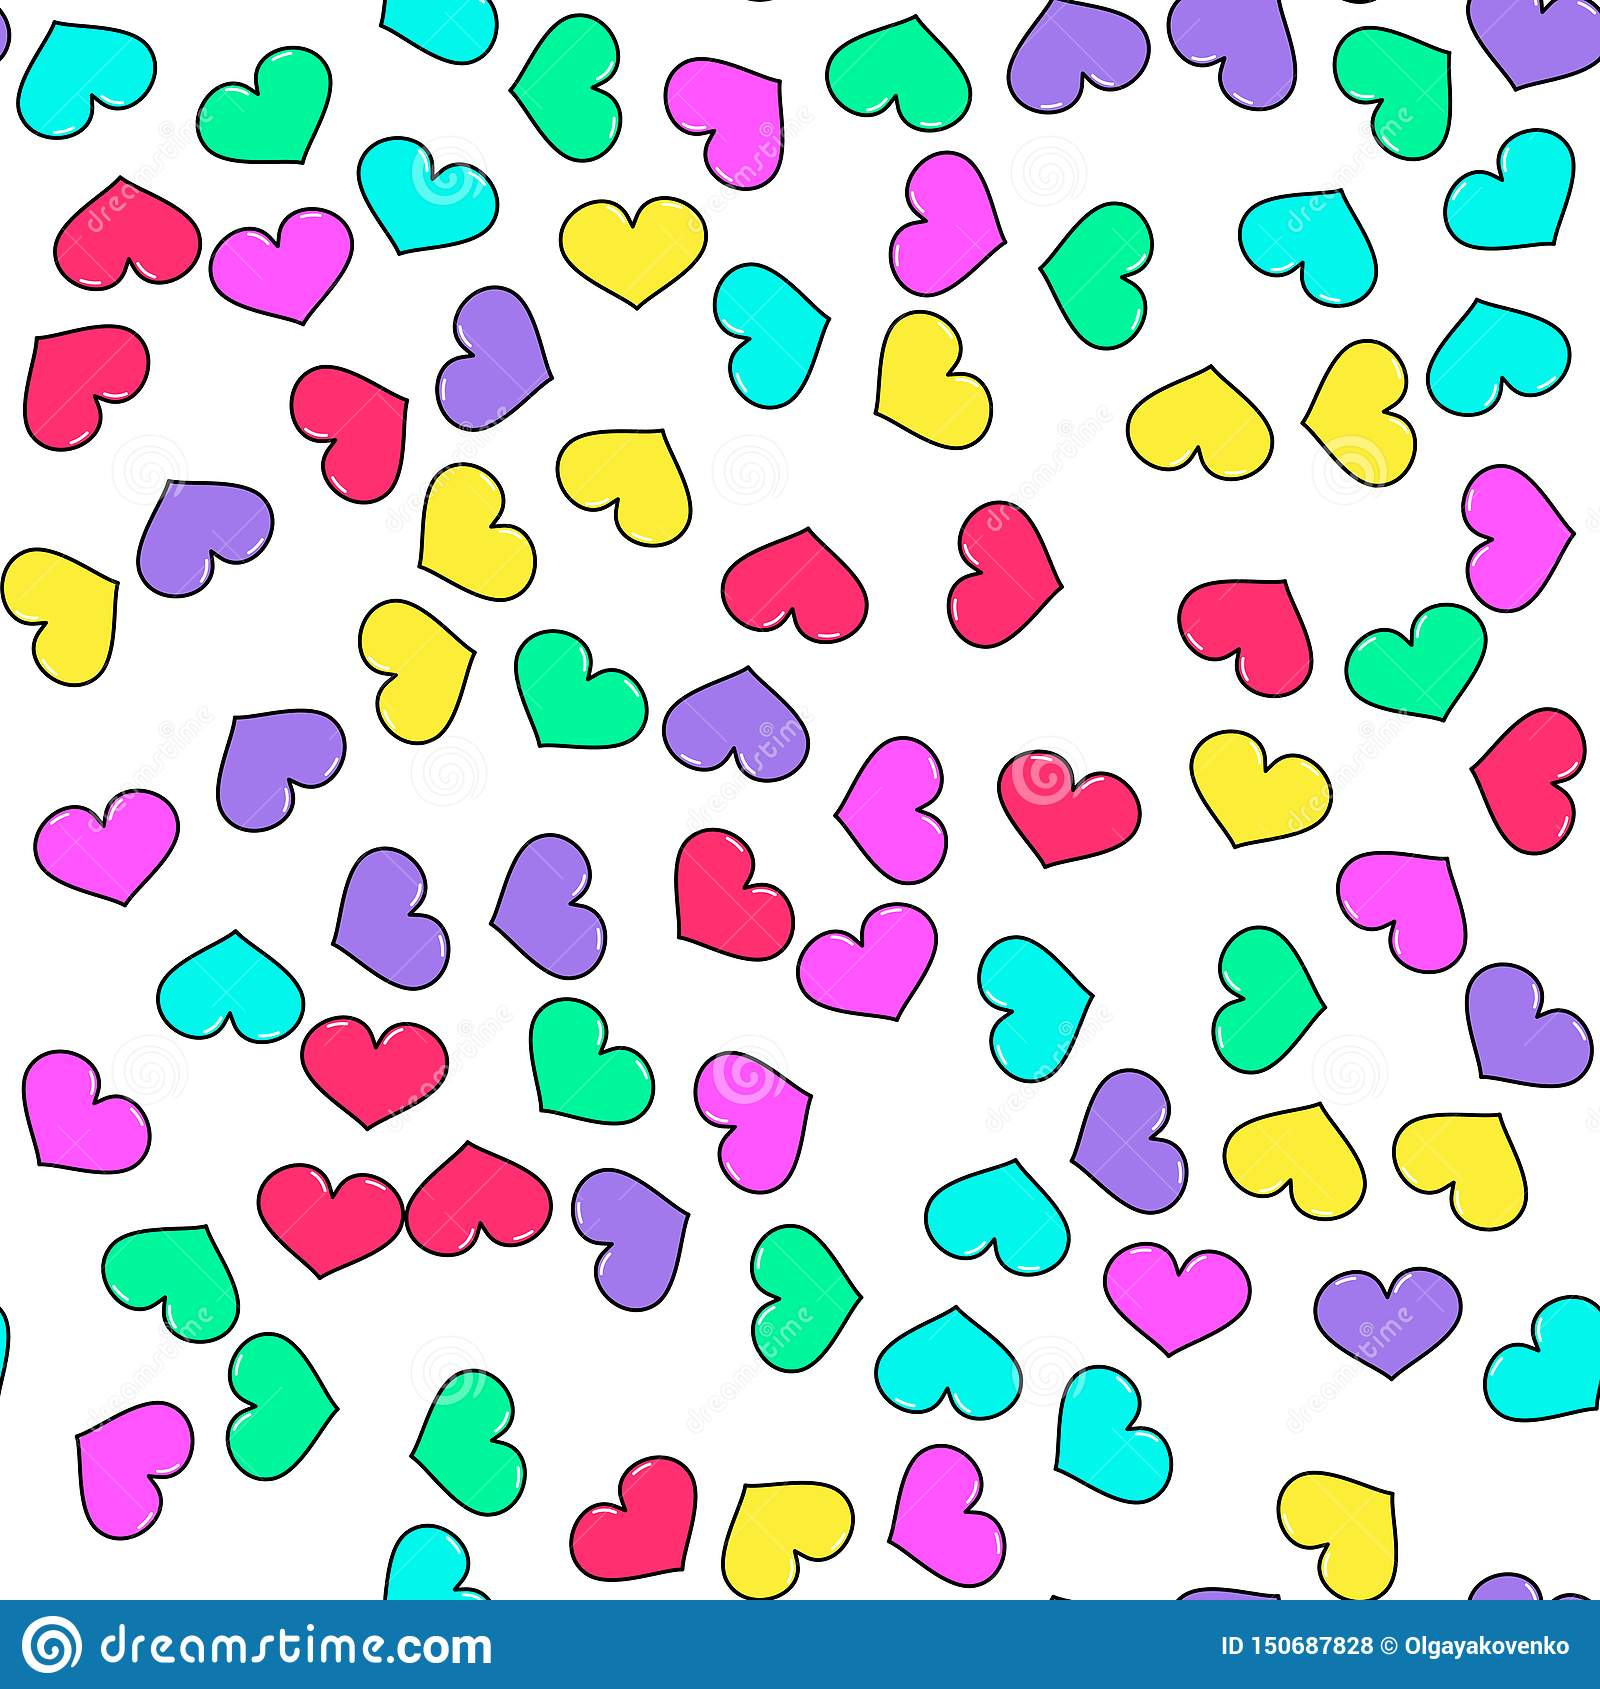 Colorful heart seamless pattern on white background. Paper print design. Abstract retro vector illustration. Trendy textile,